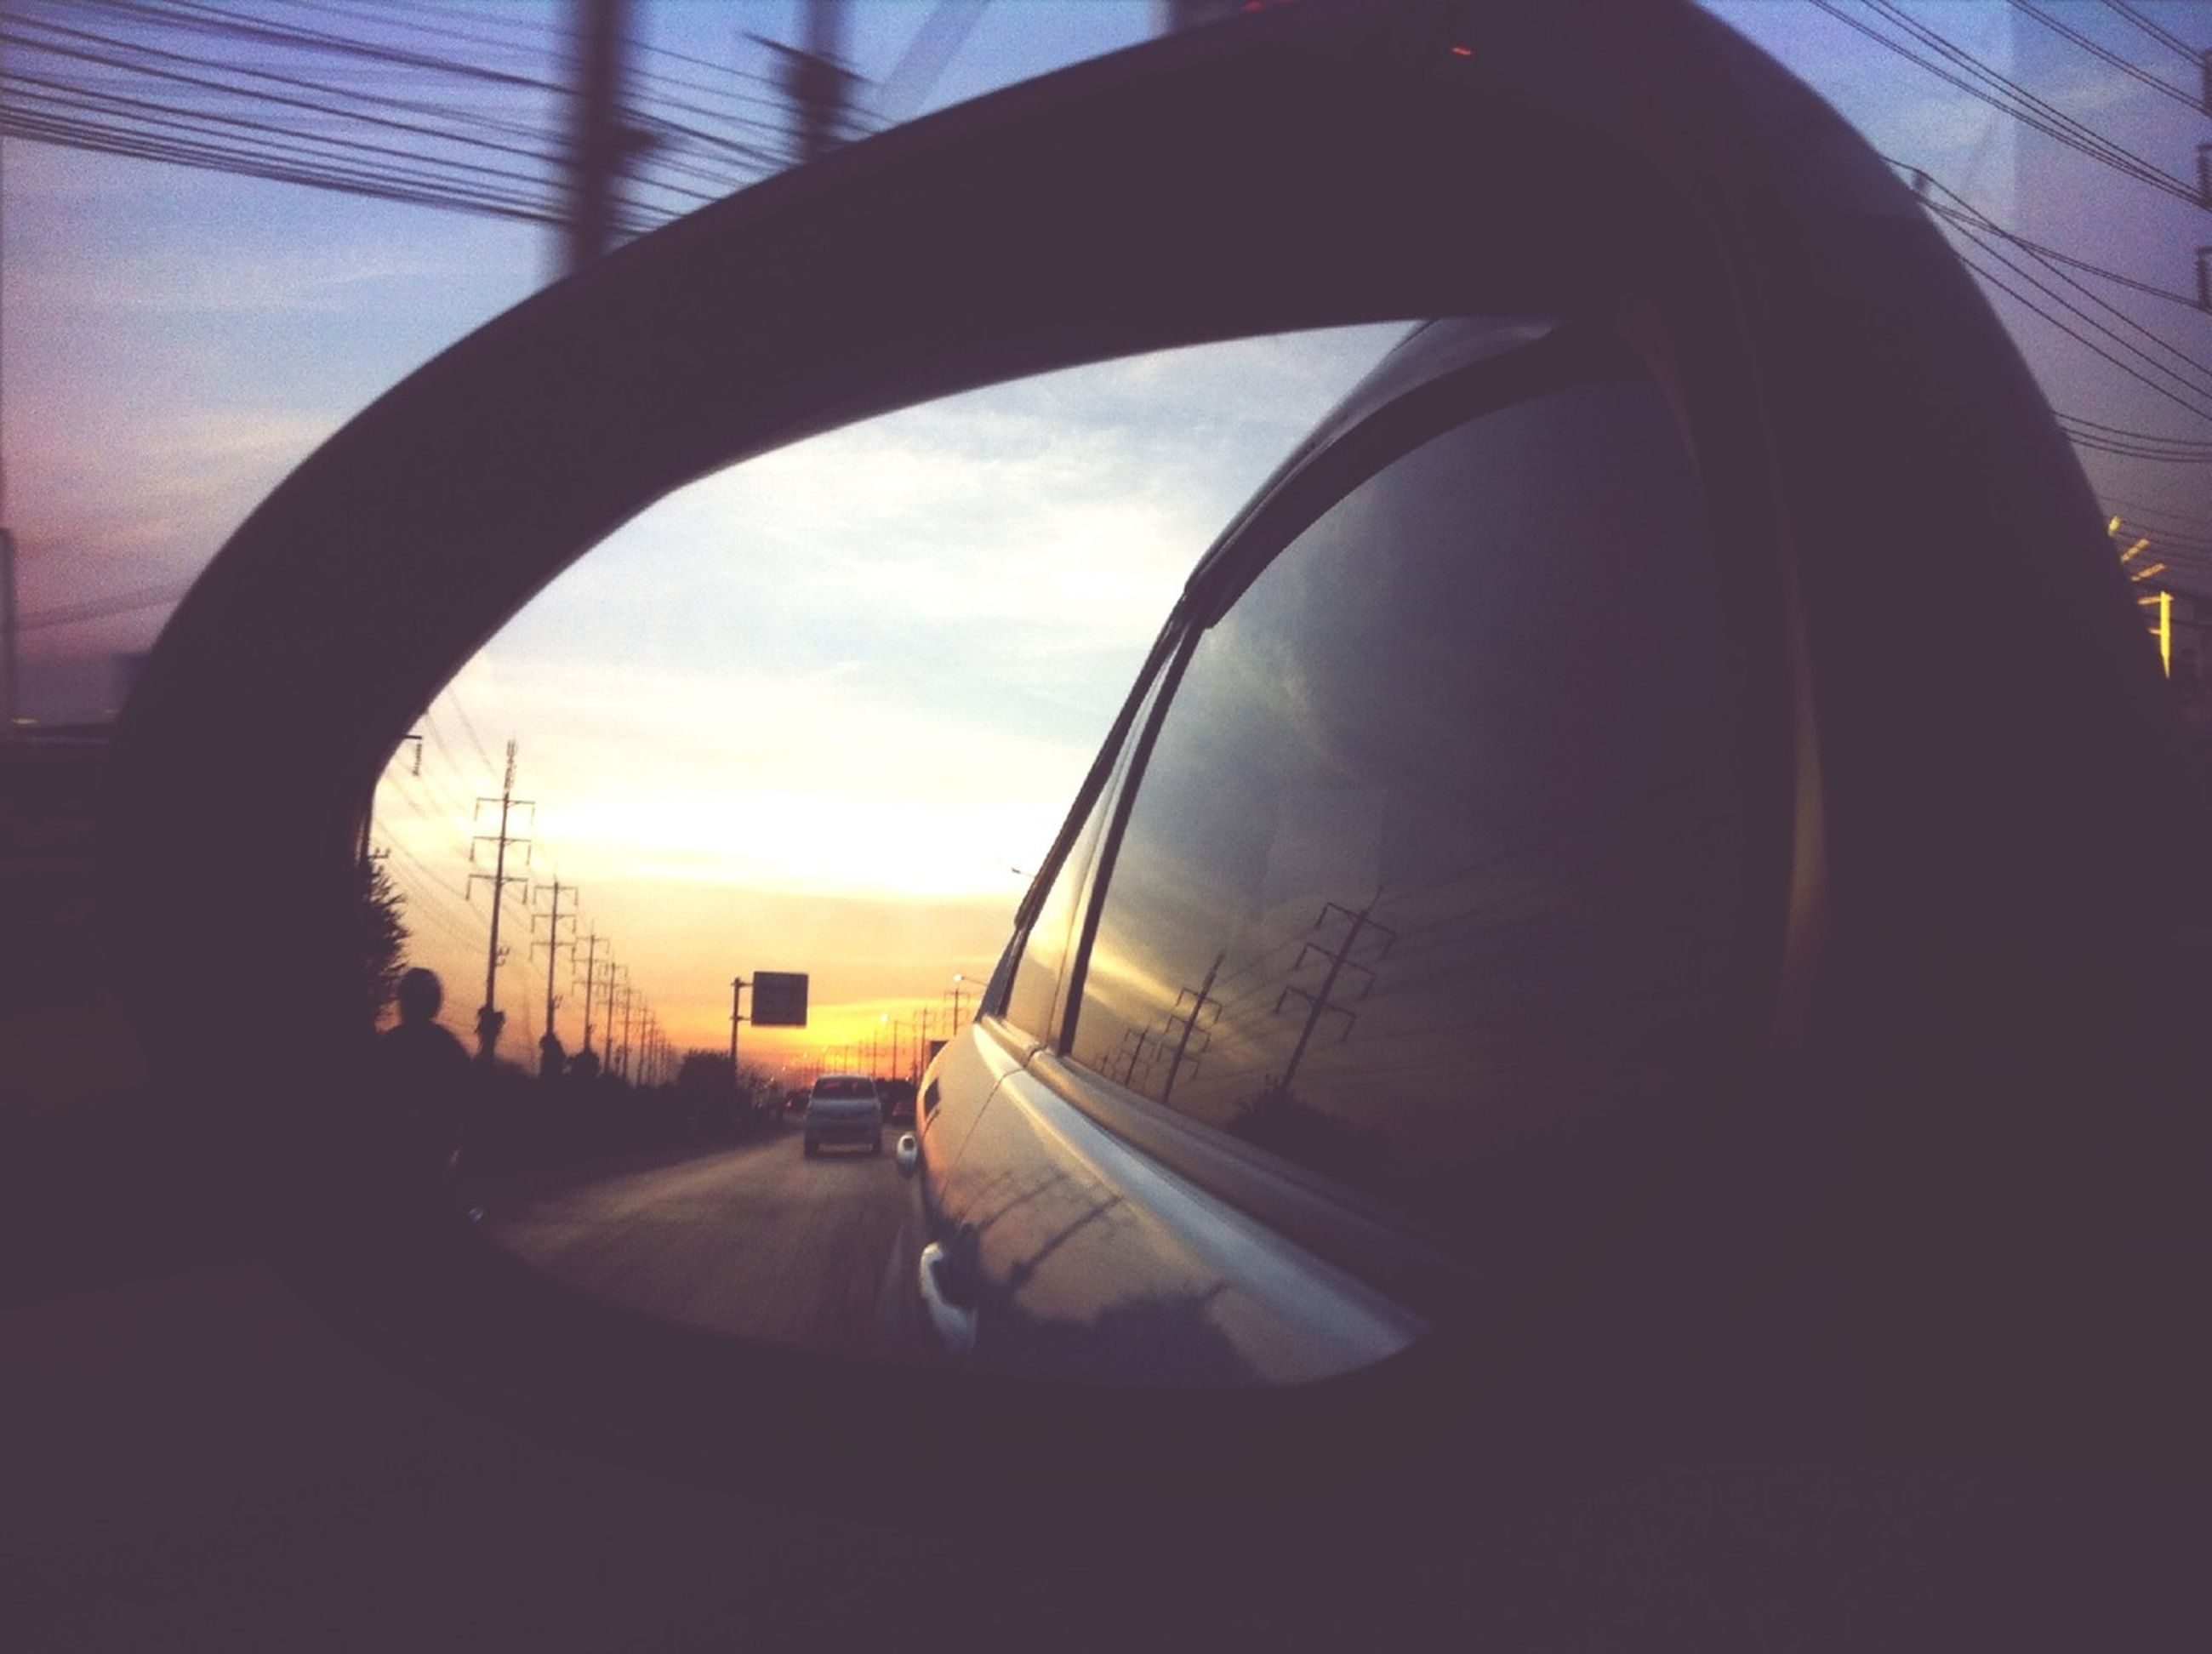 transportation, sky, built structure, architecture, mode of transport, indoors, cloud - sky, sunset, window, glass - material, car, cloud, travel, vehicle interior, transparent, no people, reflection, silhouette, arch, building exterior